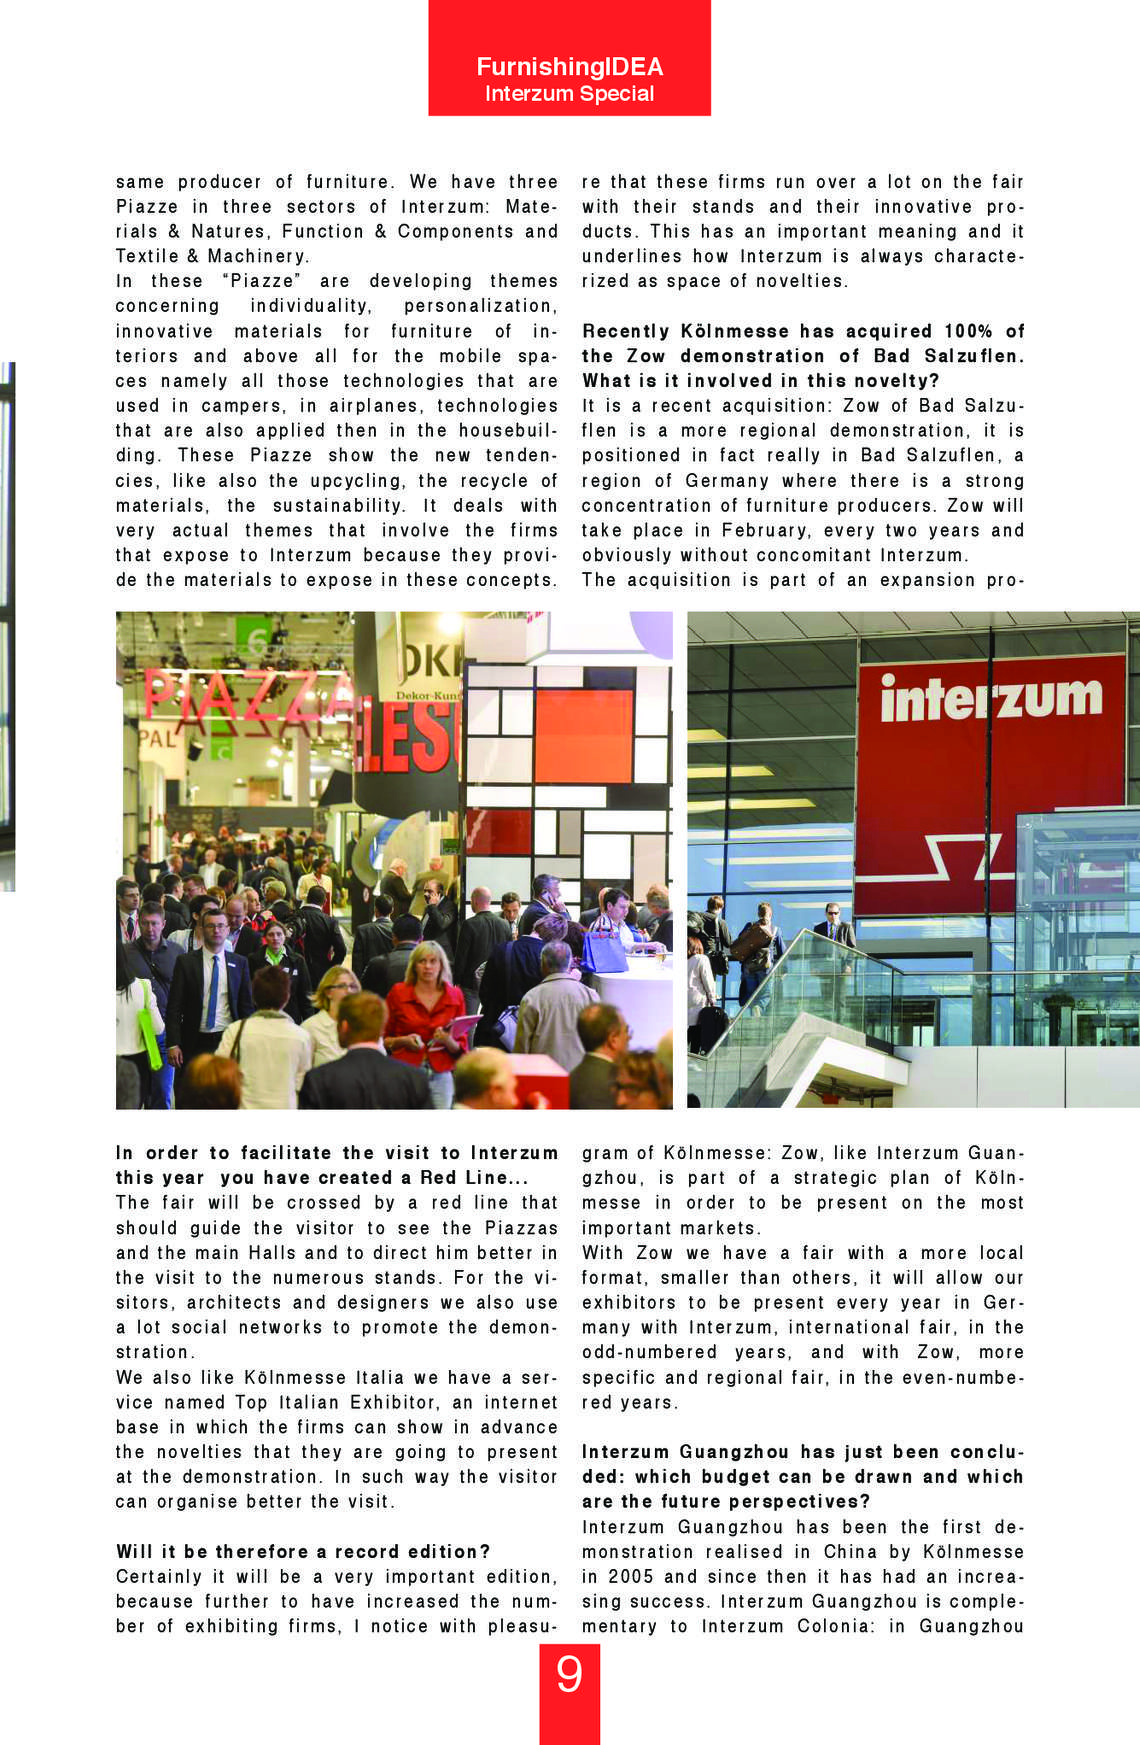 interzum-2017-_journal_6_008.jpg